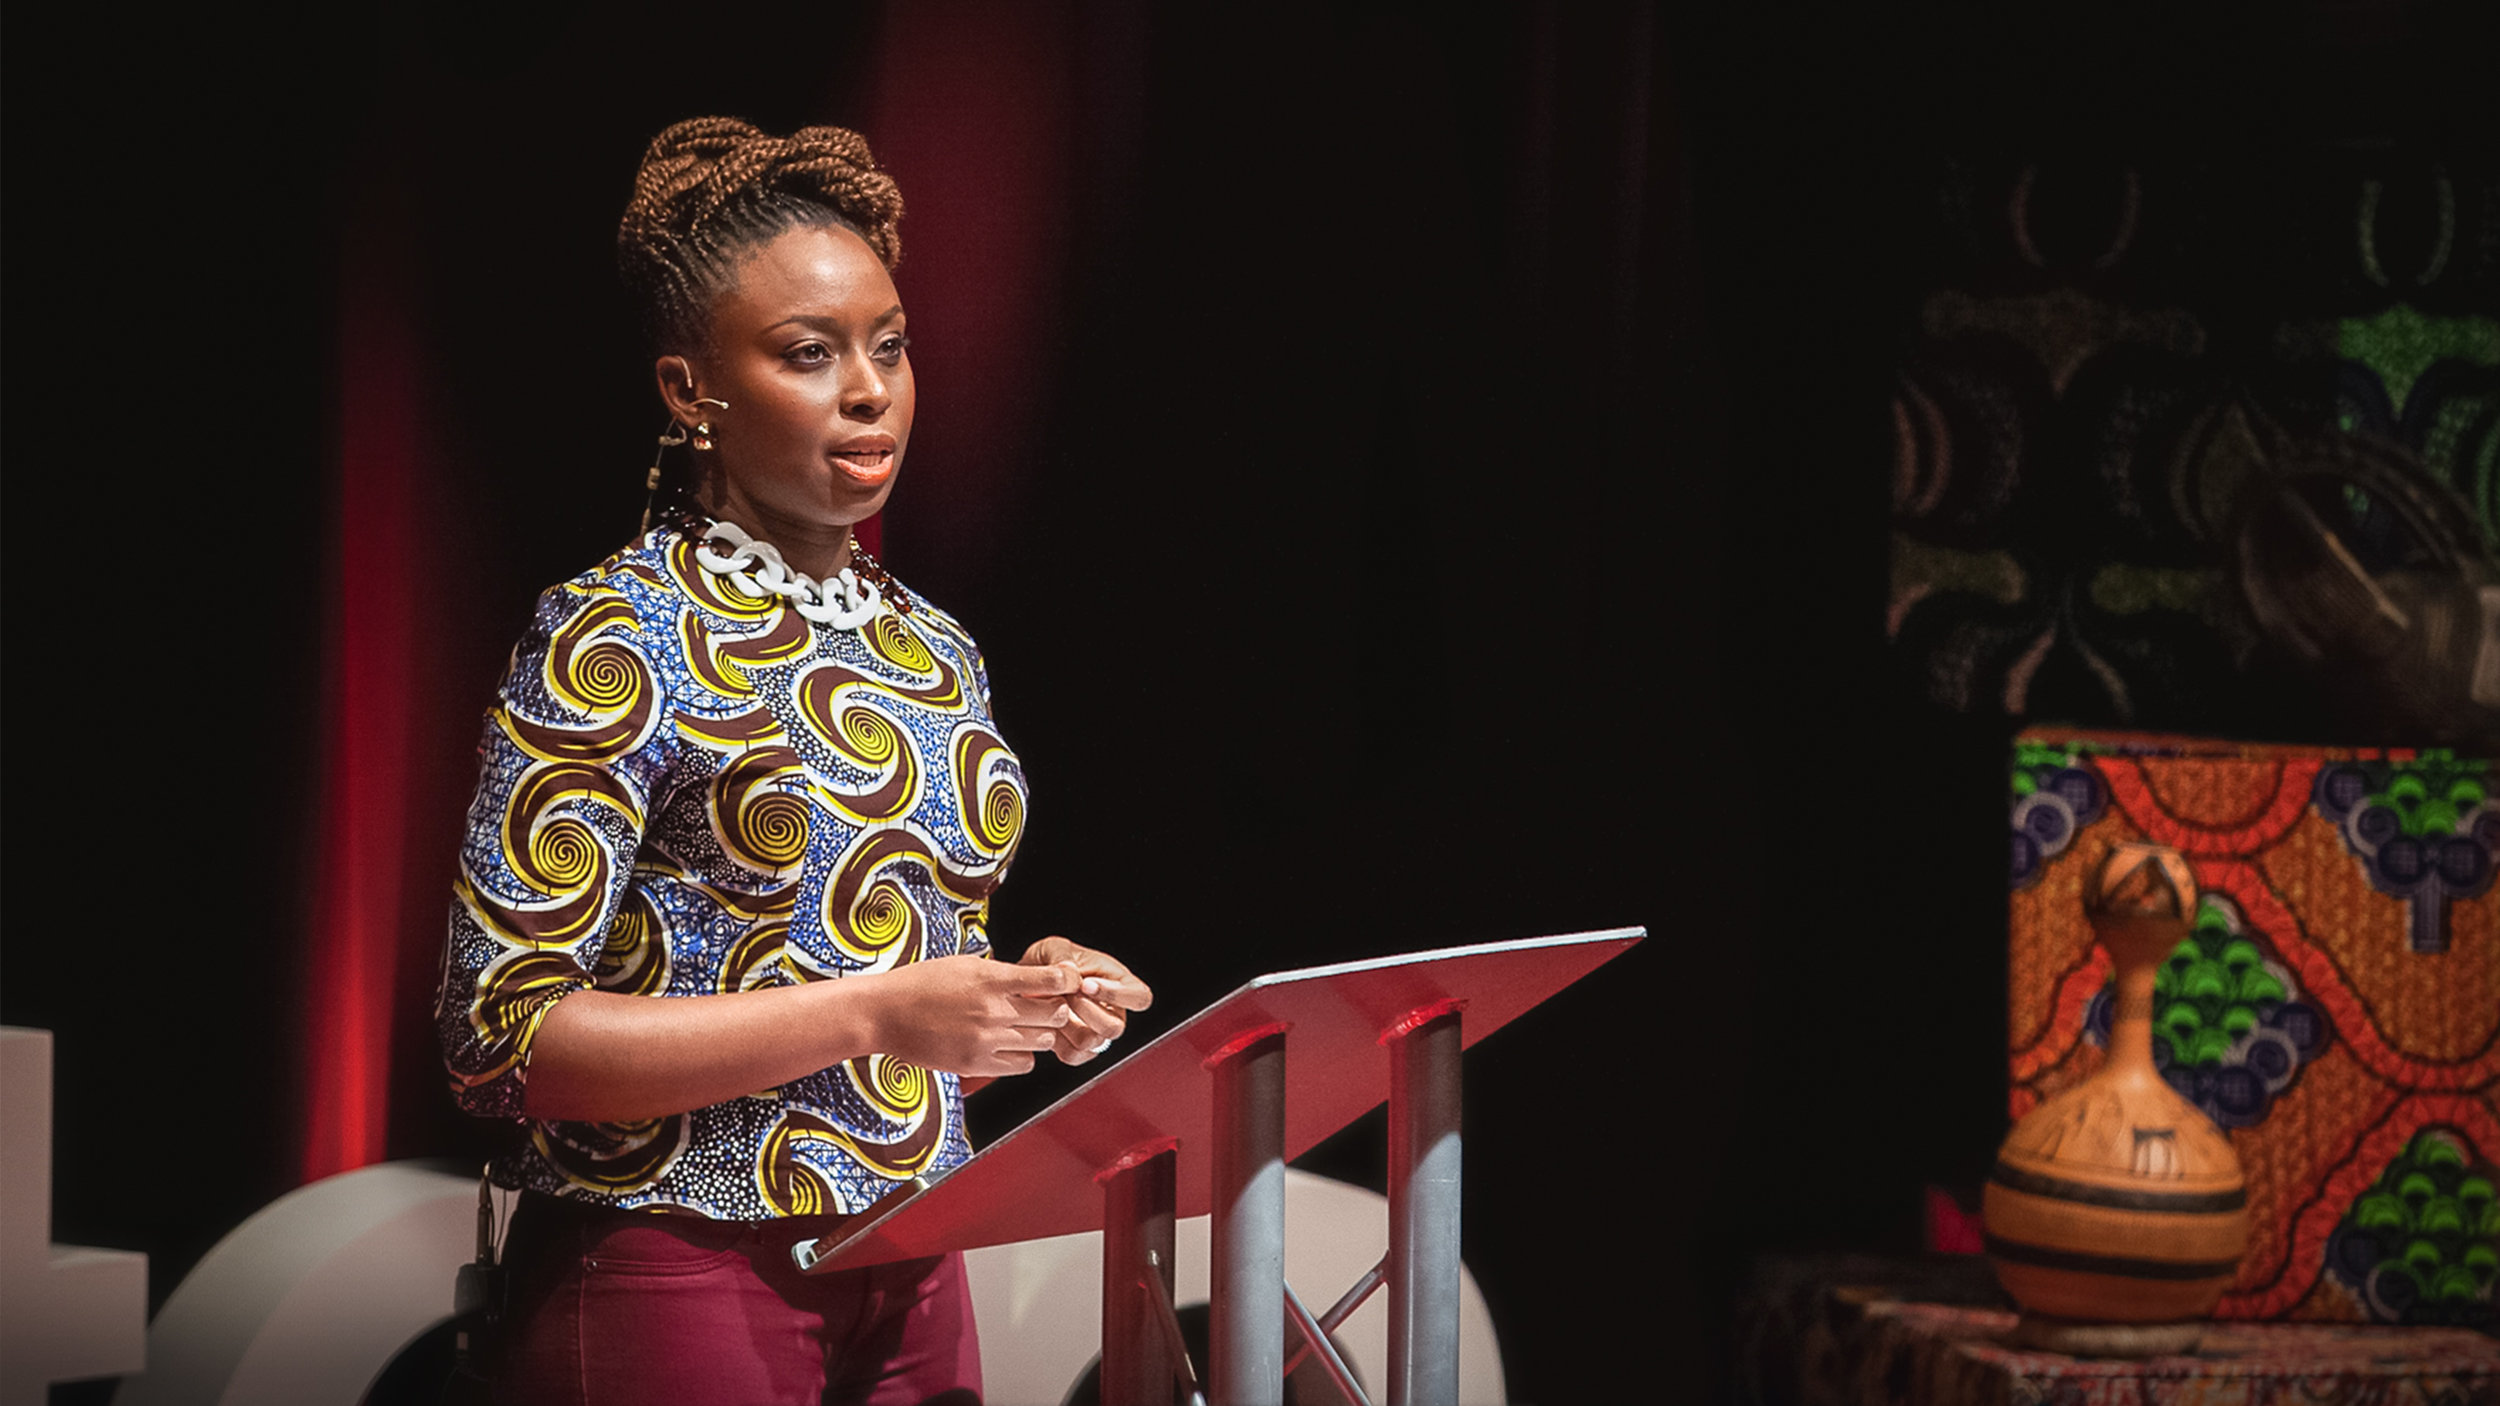 """Chimamanda Ngozi Adichie speaking at her """"We Should All Be Feminists"""" TED Talk in 2012"""